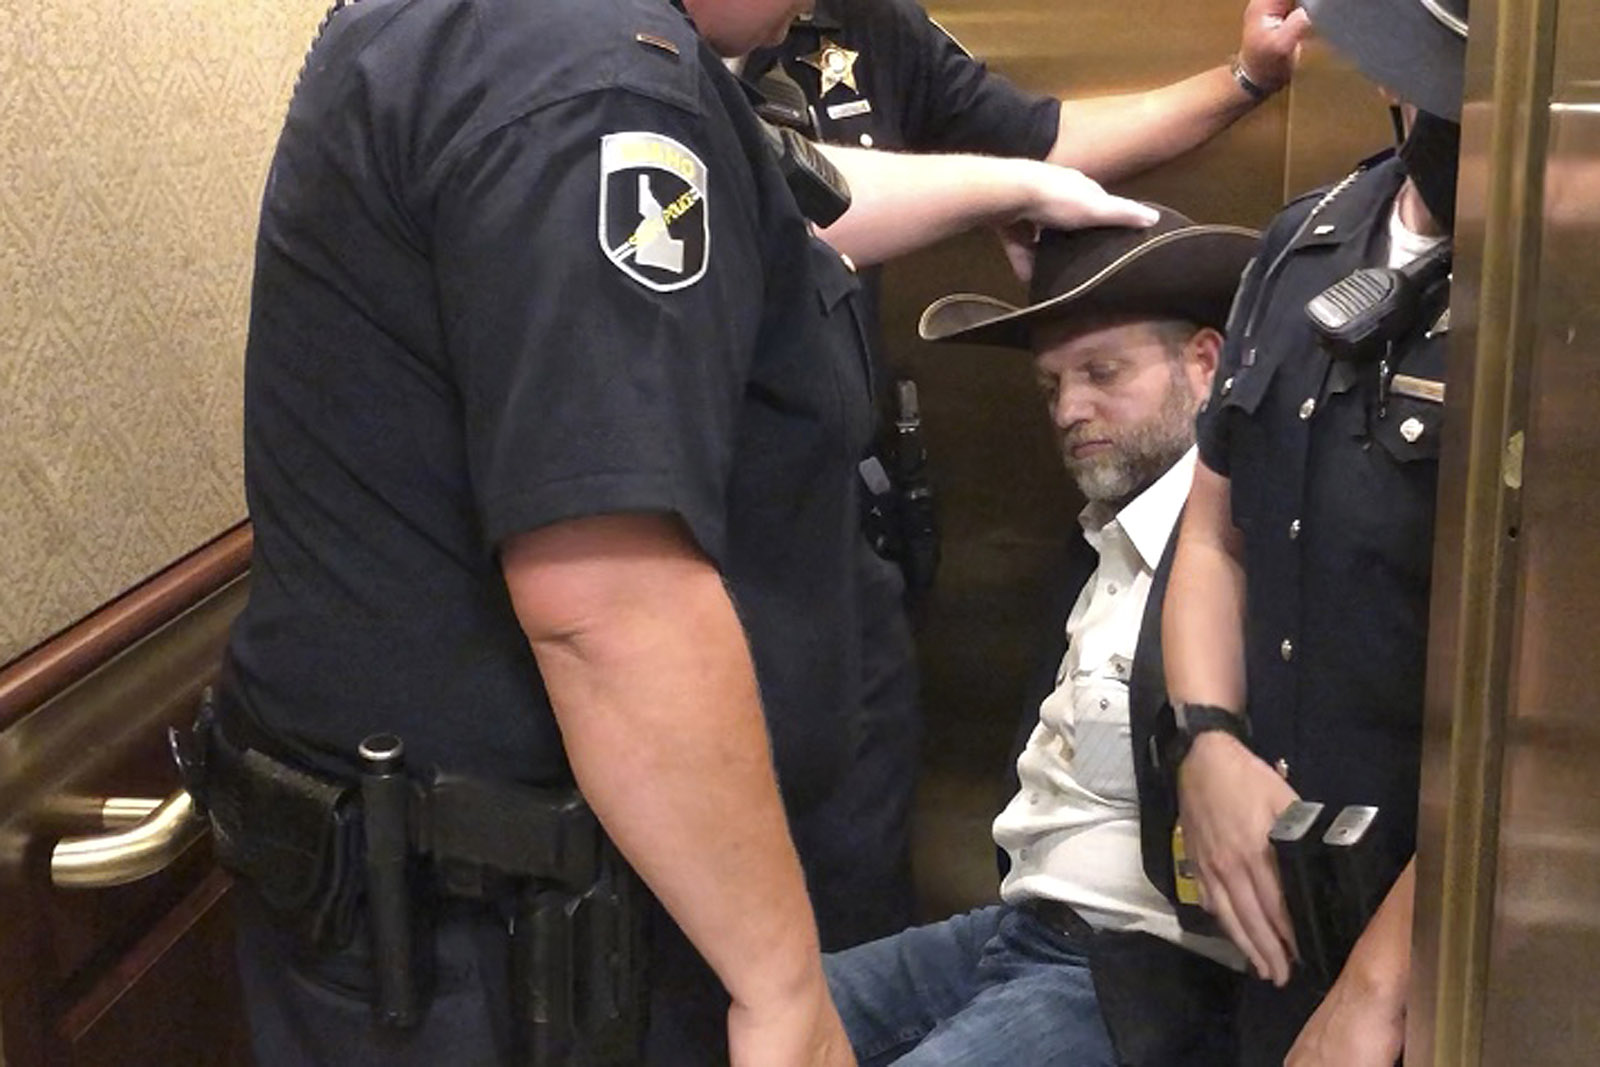 This image taken from video shows anti-government activist Ammon Bundy, rear, being wheeled into an elevator in a chair following his arrest at the Idaho Statehouse in Boise, Idaho, Tuesday, August 25.